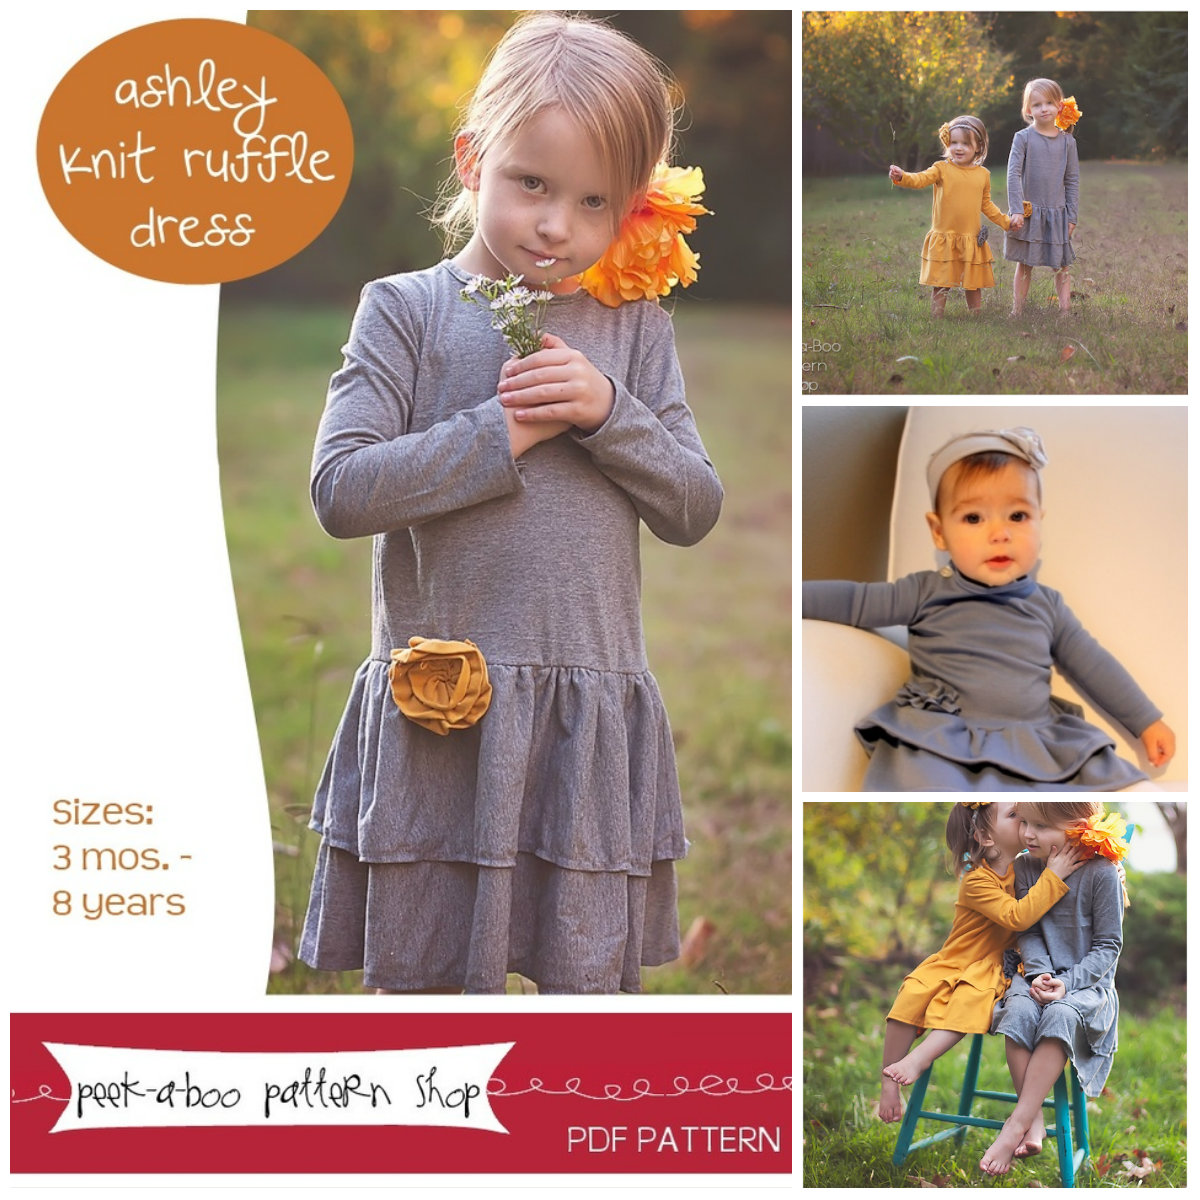 Peek-A Boo Ahsley Knit Ruffle Dress Digital Pattern ( Size 3 mo -8 years )